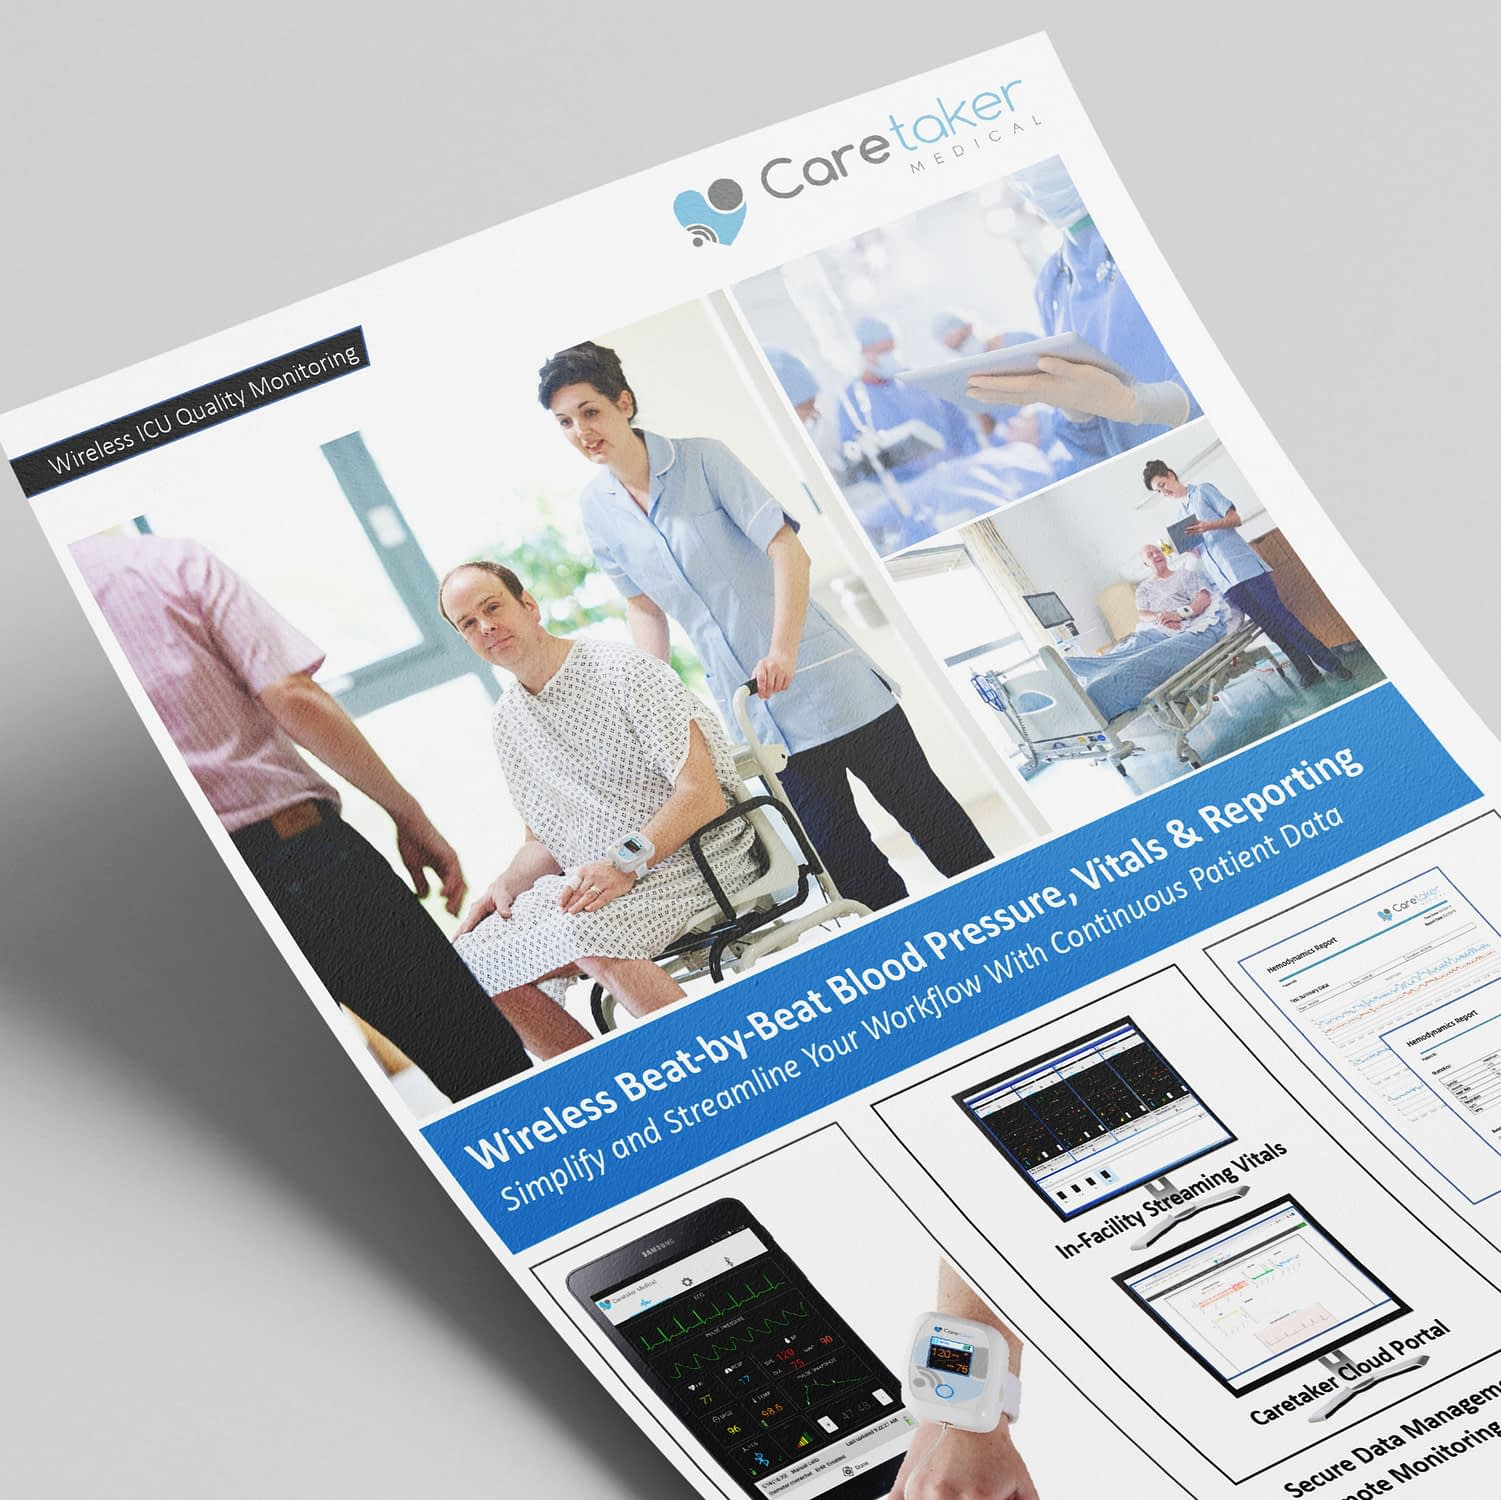 Caretakermedical-product-overview-one-pager